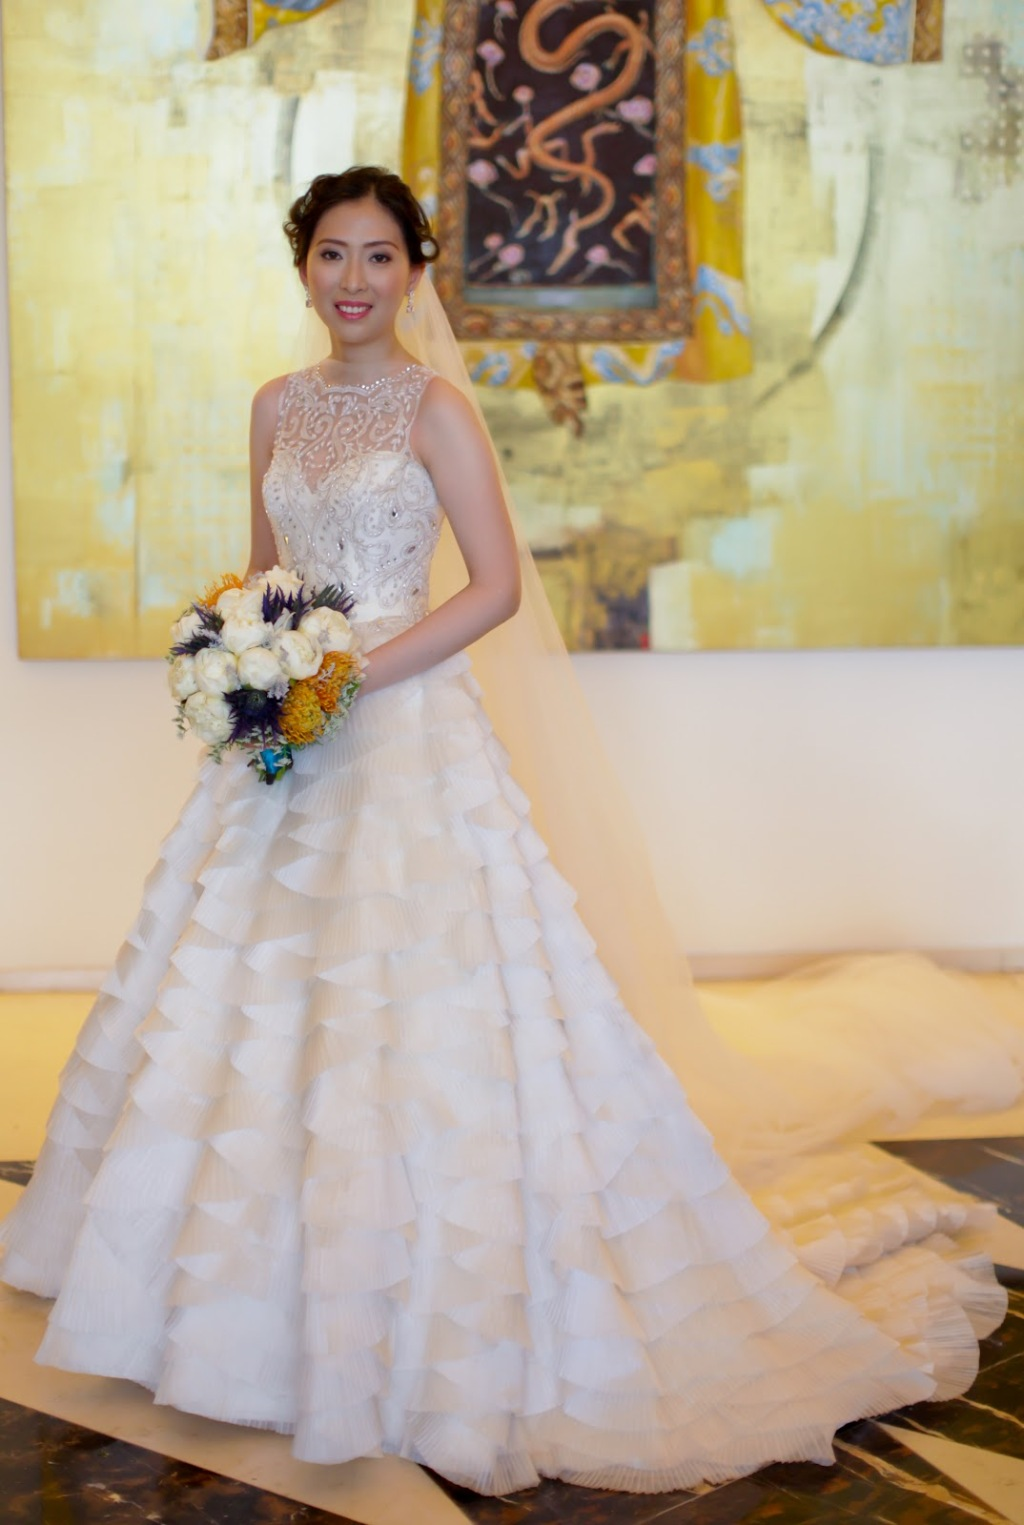 Veluz Reyes Classic Brides Collection | The FashionBrides